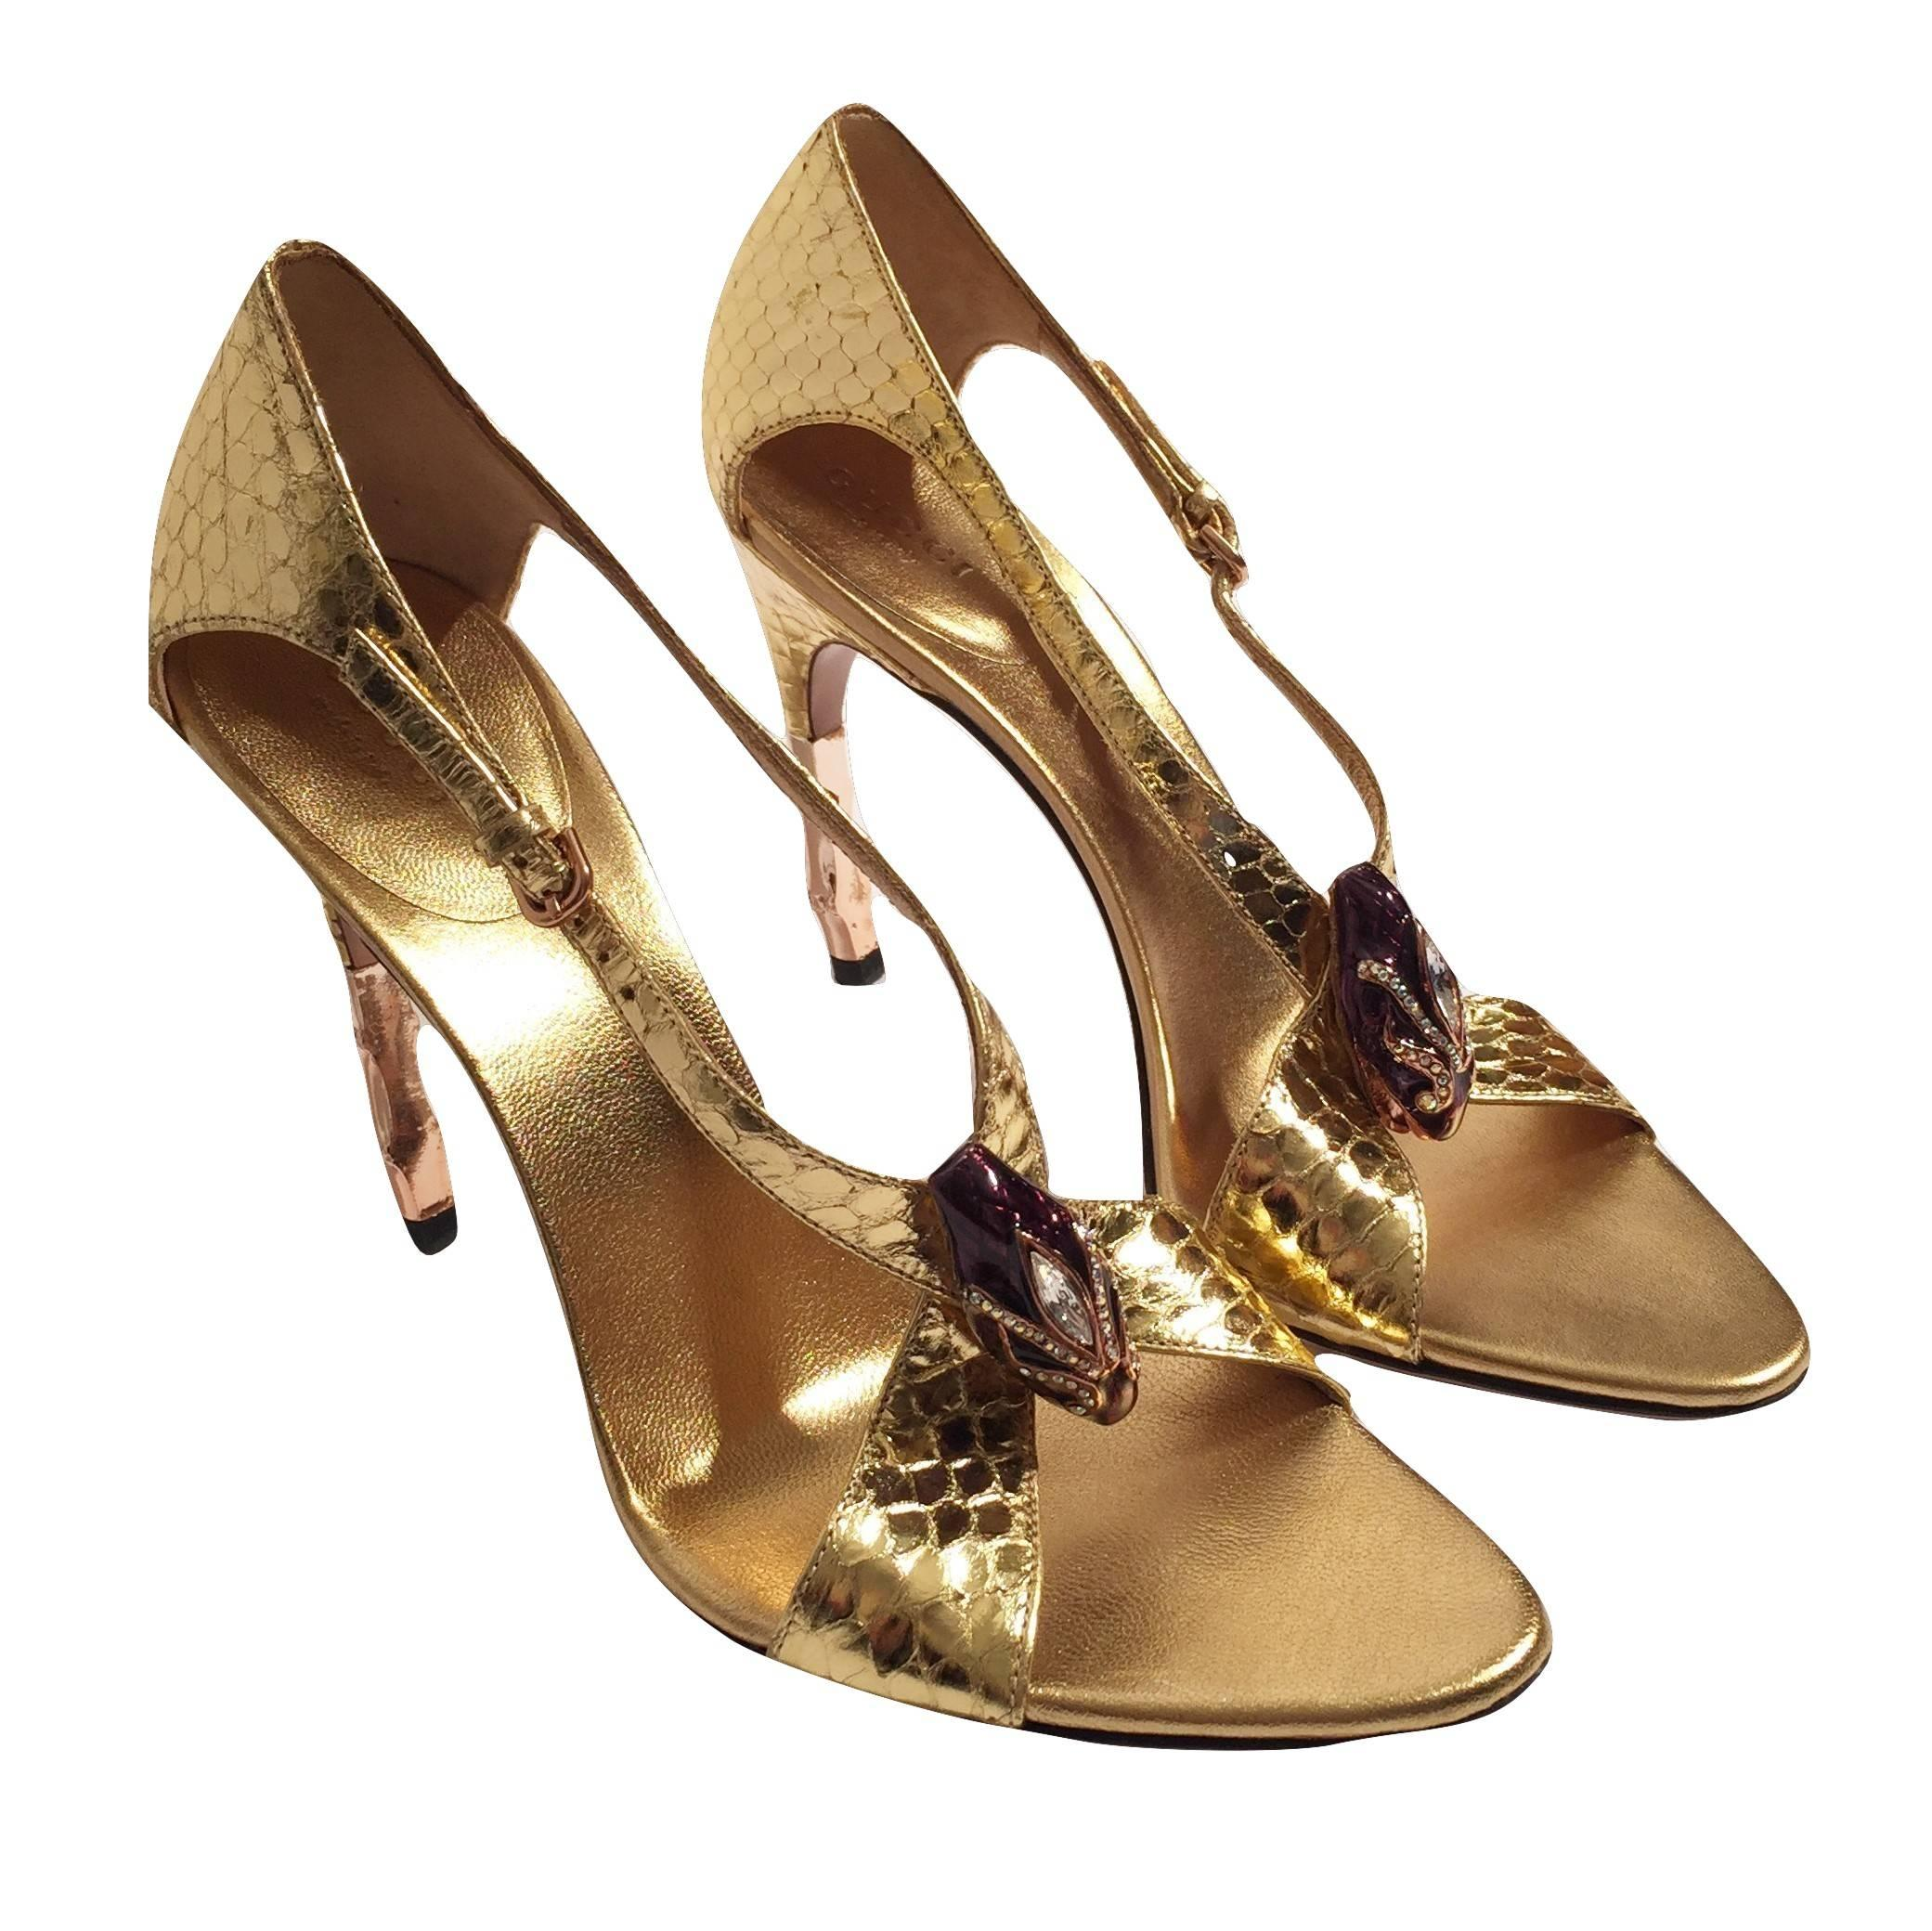 0ff920a88d9 New Tom Ford for Gucci Python Snake Head Ad Runway Heels Sz 7 For Sale at  1stdibs